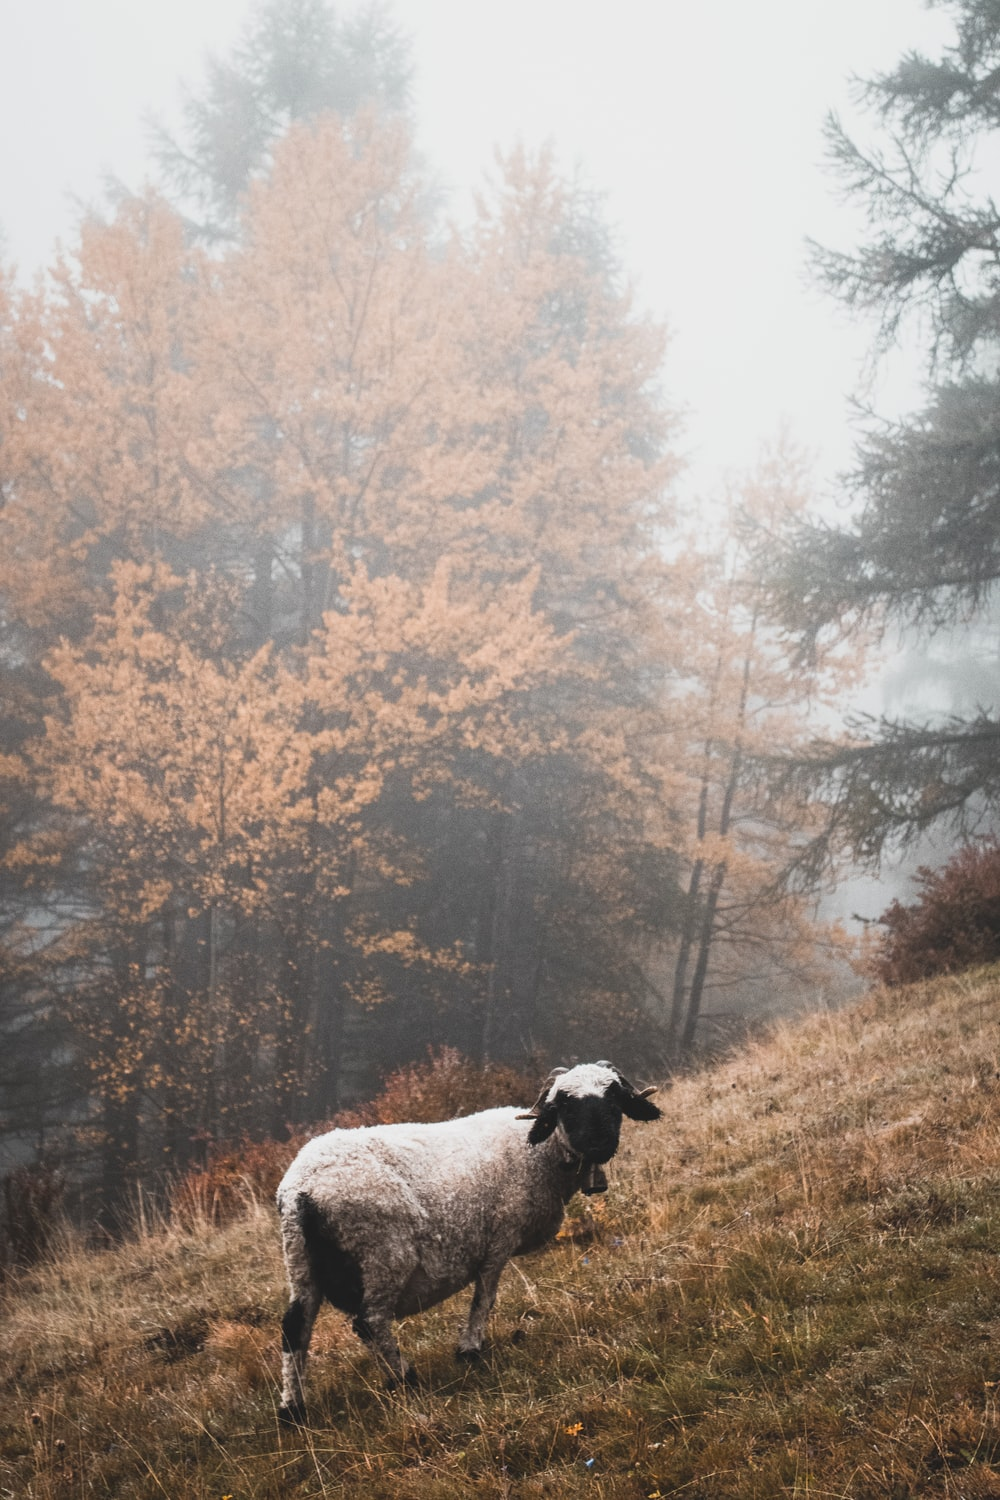 white sheep near on forest trees